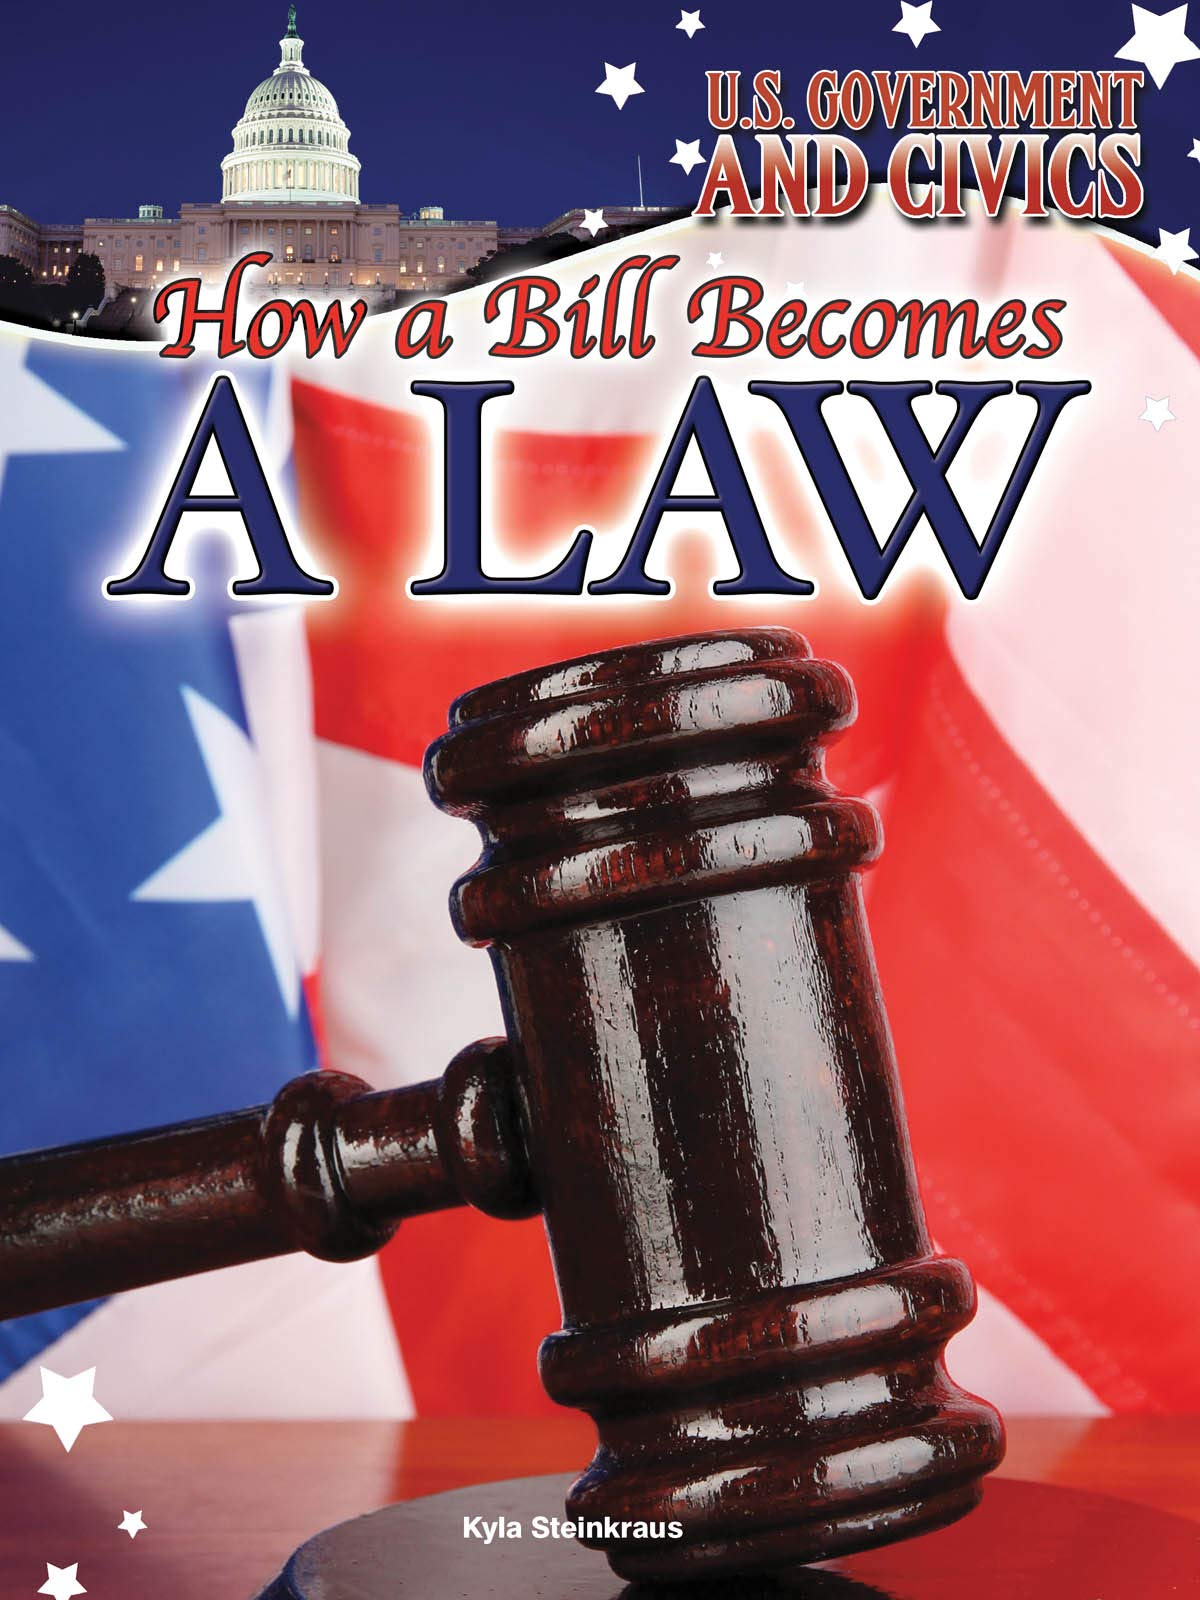 How a Bill Becomes a Law (U.S. Government and Civics) PDF